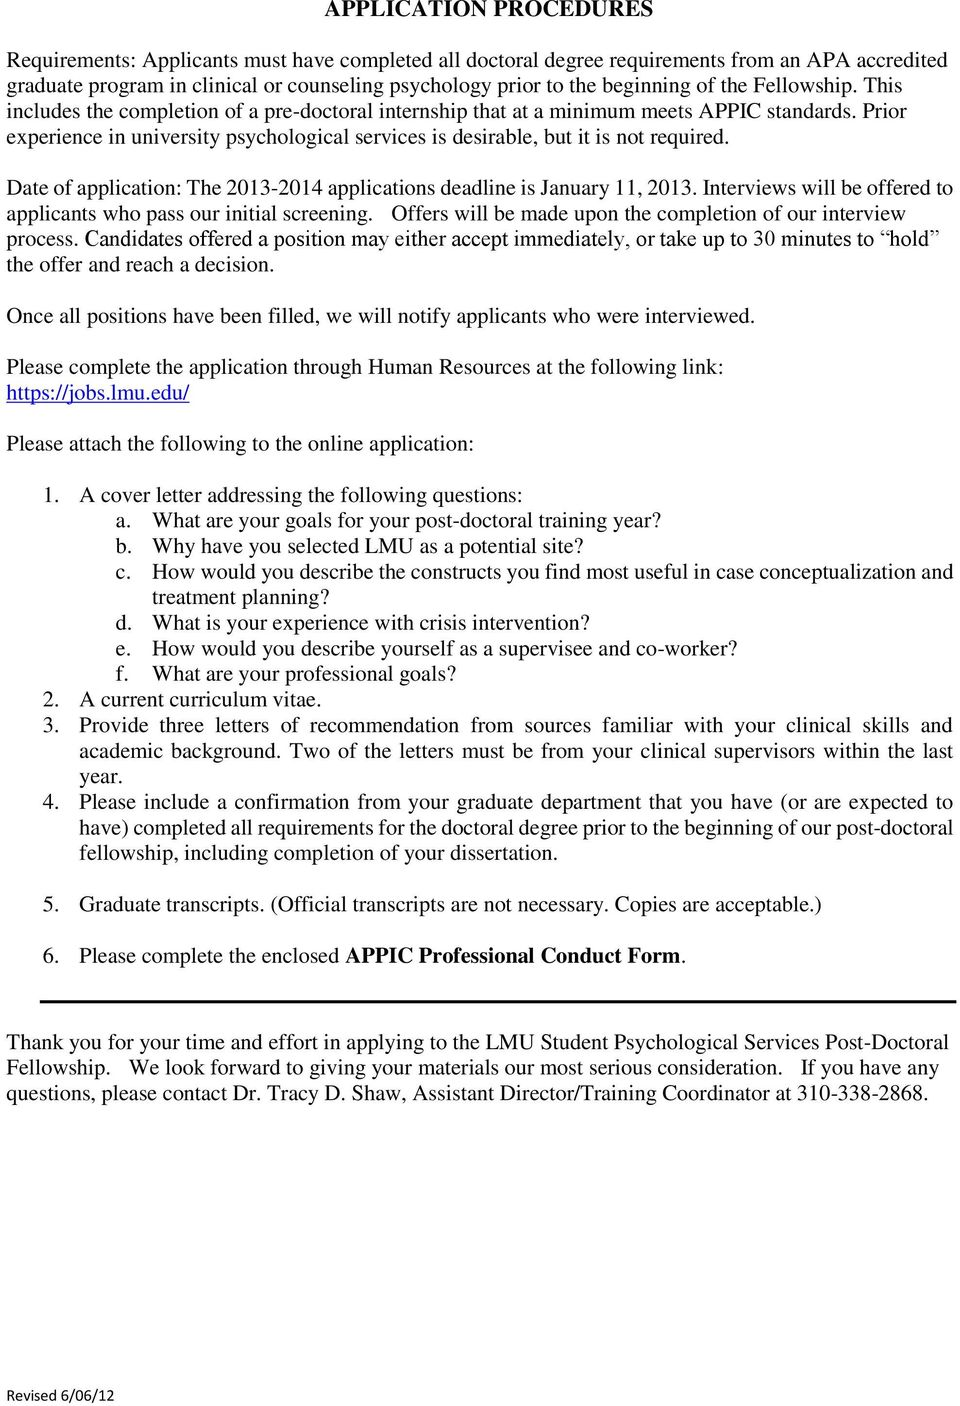 Prior experience in university psychological services is desirable, but it is not required. Date of application: The 2013-2014 applications deadline is January 11, 2013.